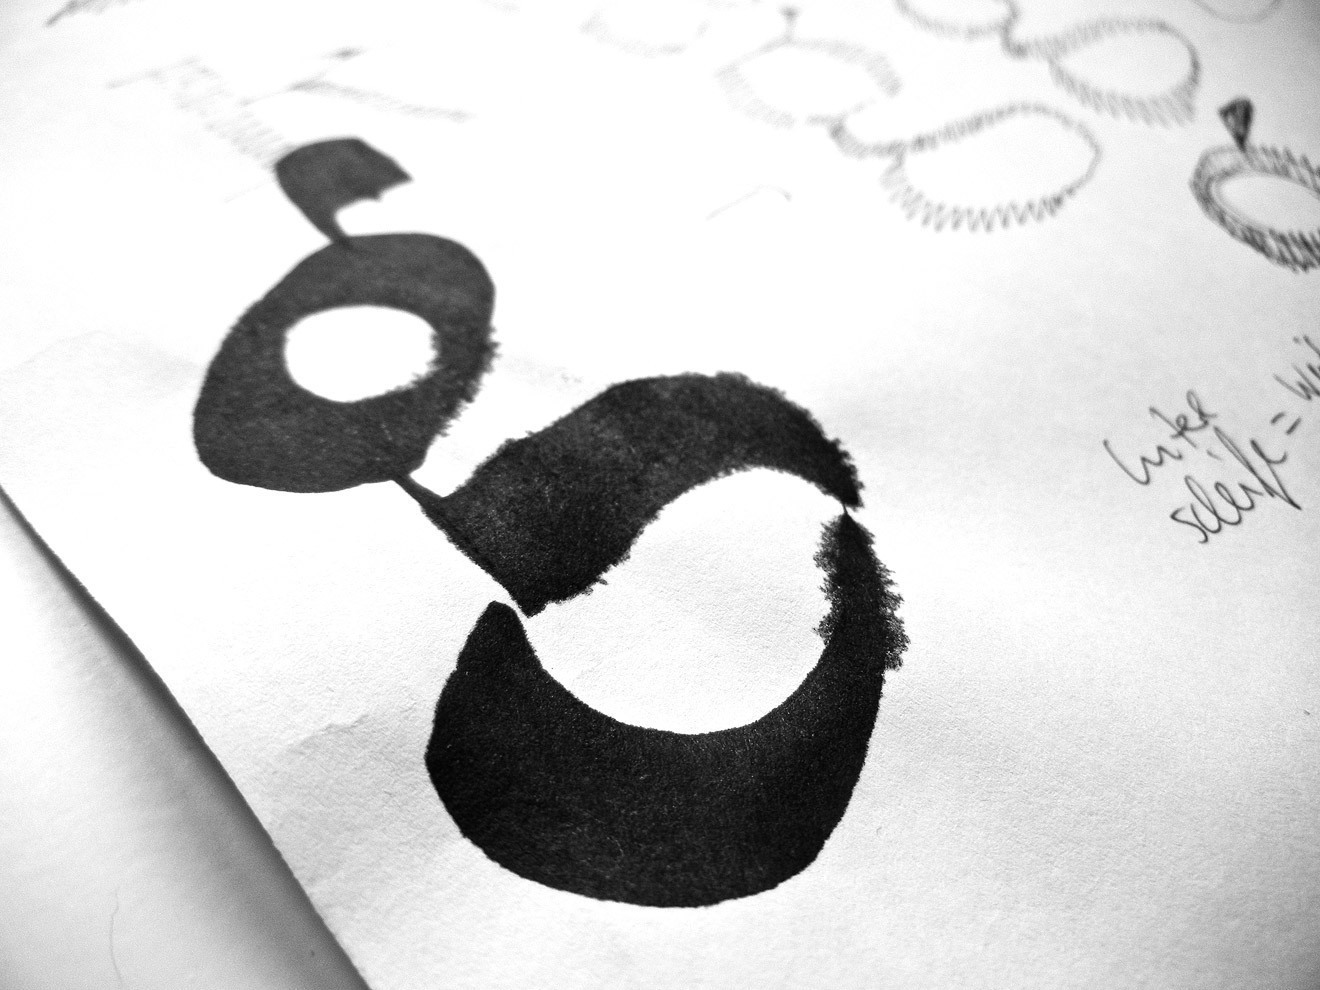 Unexpected inspiration: doodling in calligraphy class gives birth to the distinctively shaped lowercase 'g'.